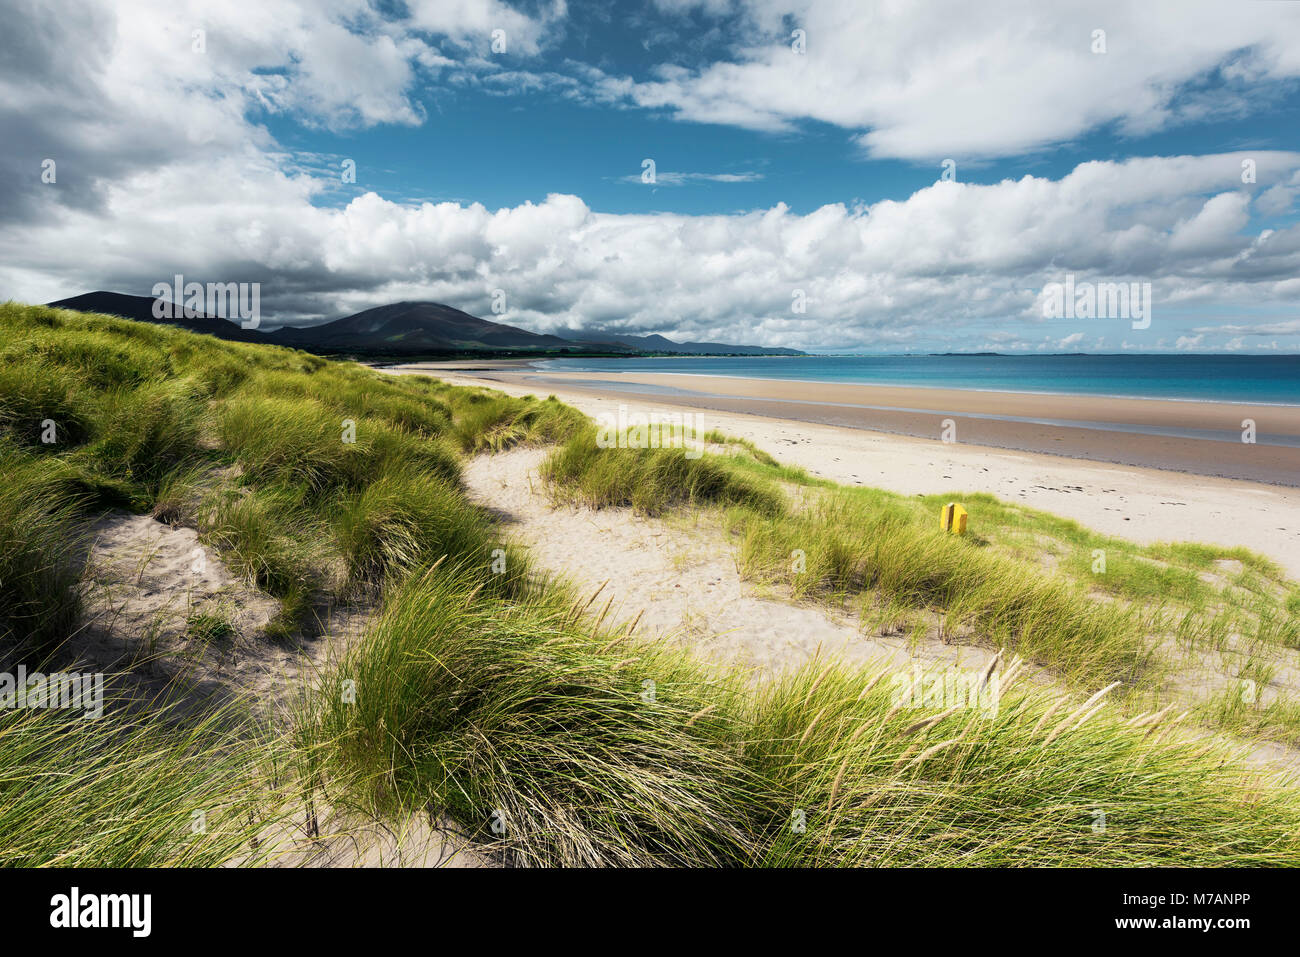 Beach scene with dune grass near Trallee Bay, Kerry, Ireland - Stock Image